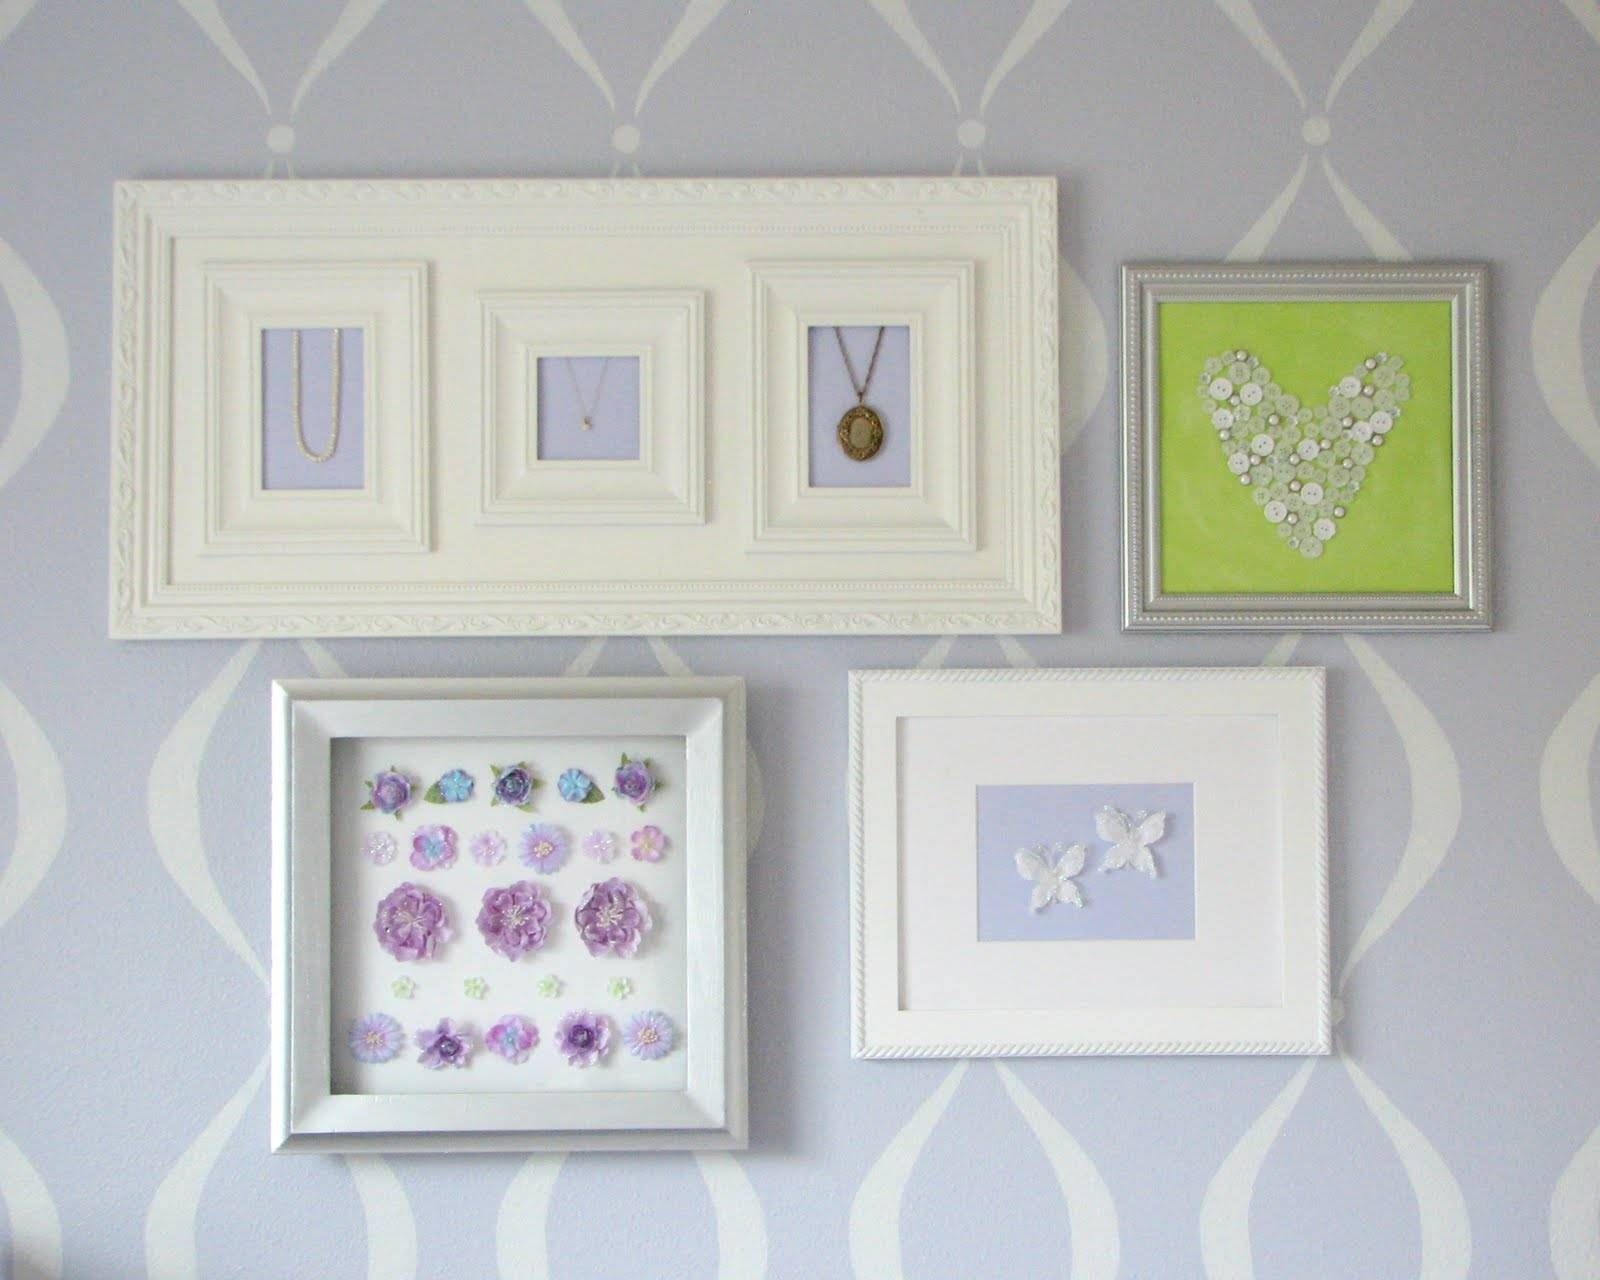 What I Made Today: Baby Girl's Nursery: Wall Art Regarding Most Popular 3d Wall Art For Baby Nursery (View 5 of 20)